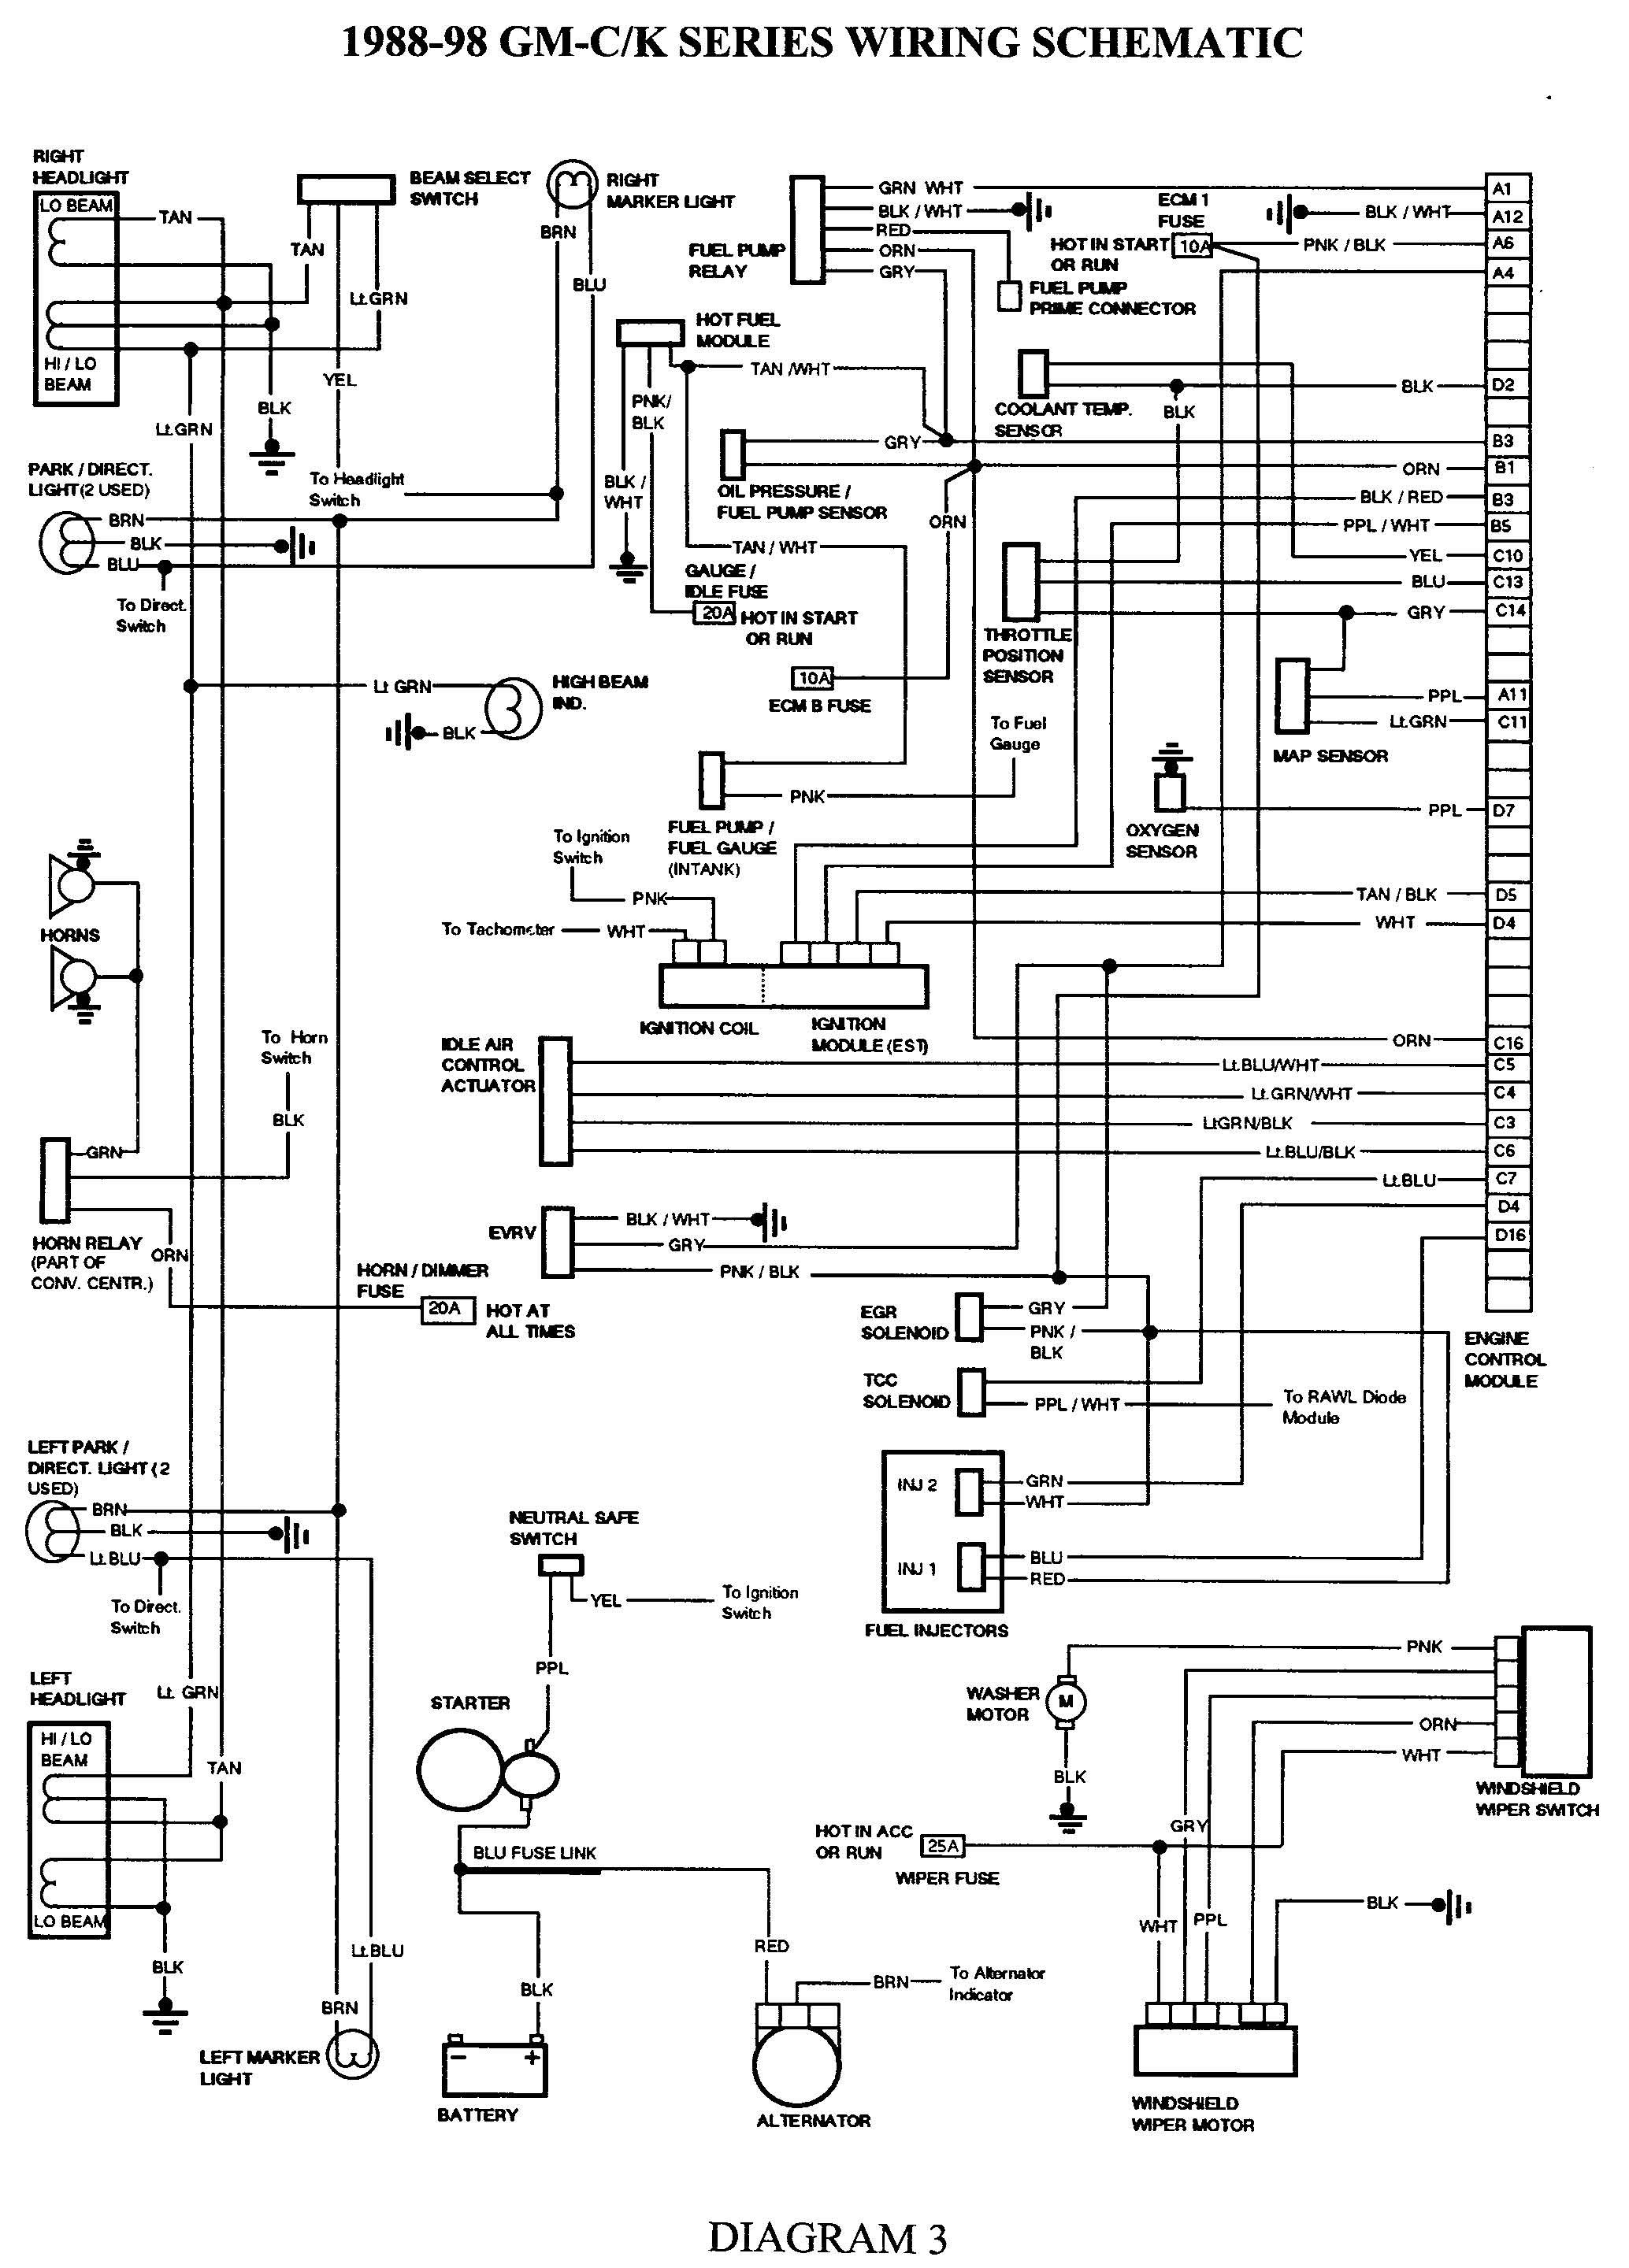 chevy wiring diagrams color wiring diagram detailed car dashboard diagram camry wire diagram color labels wiring [ 2068 x 2880 Pixel ]